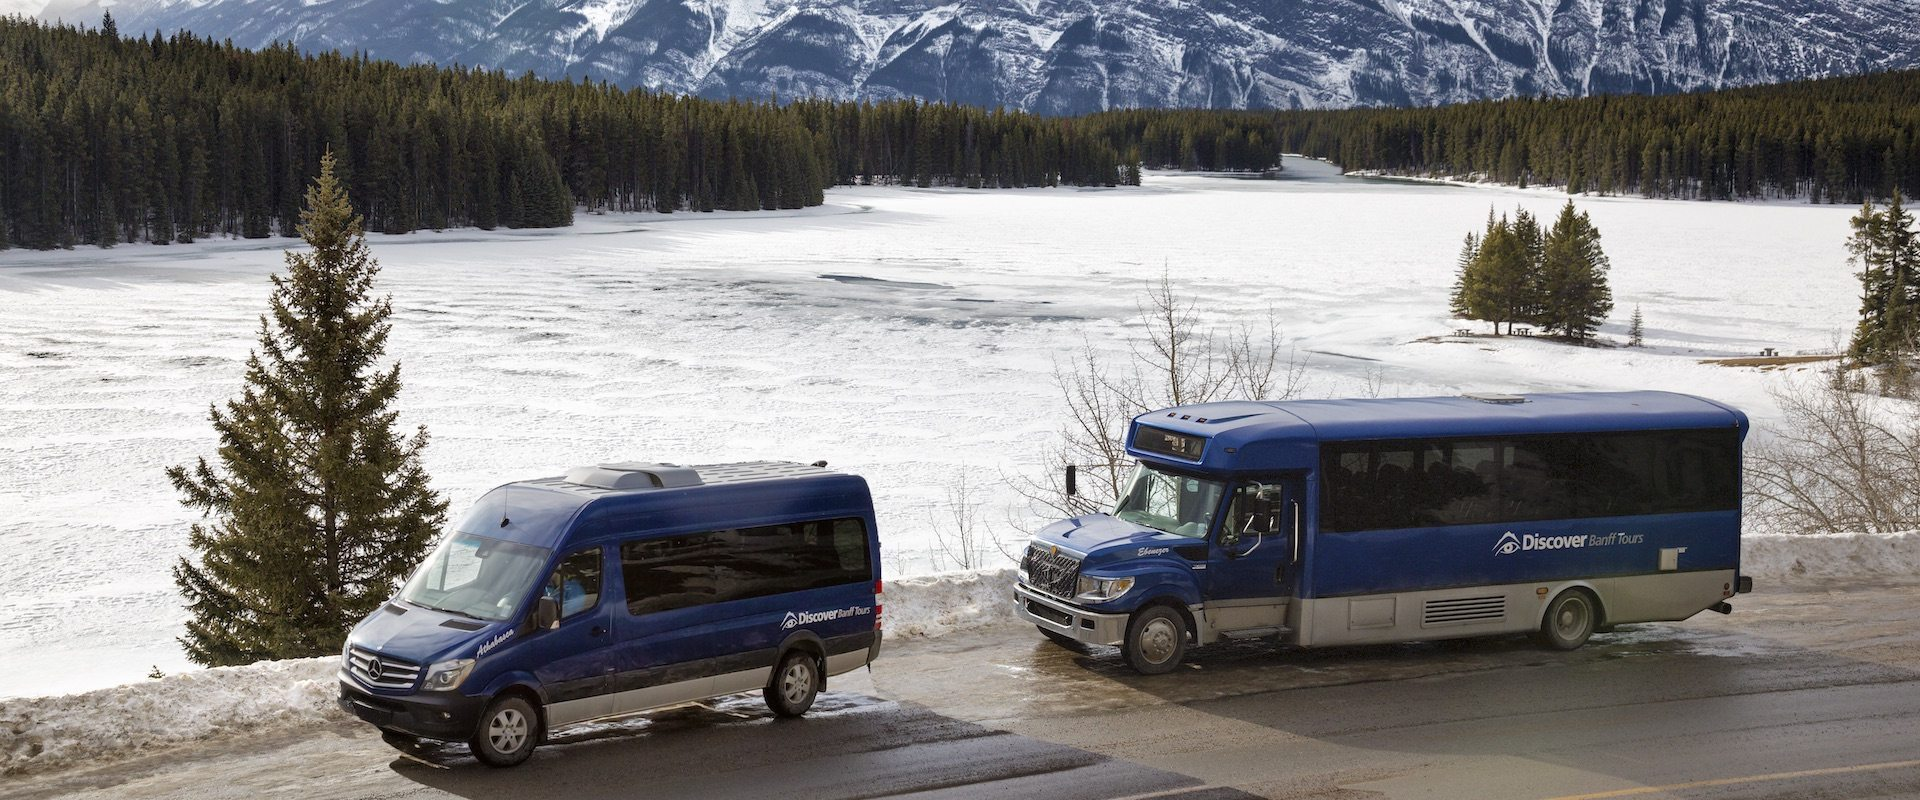 Transportation from Calgary to Banff - Discover Banff Tours